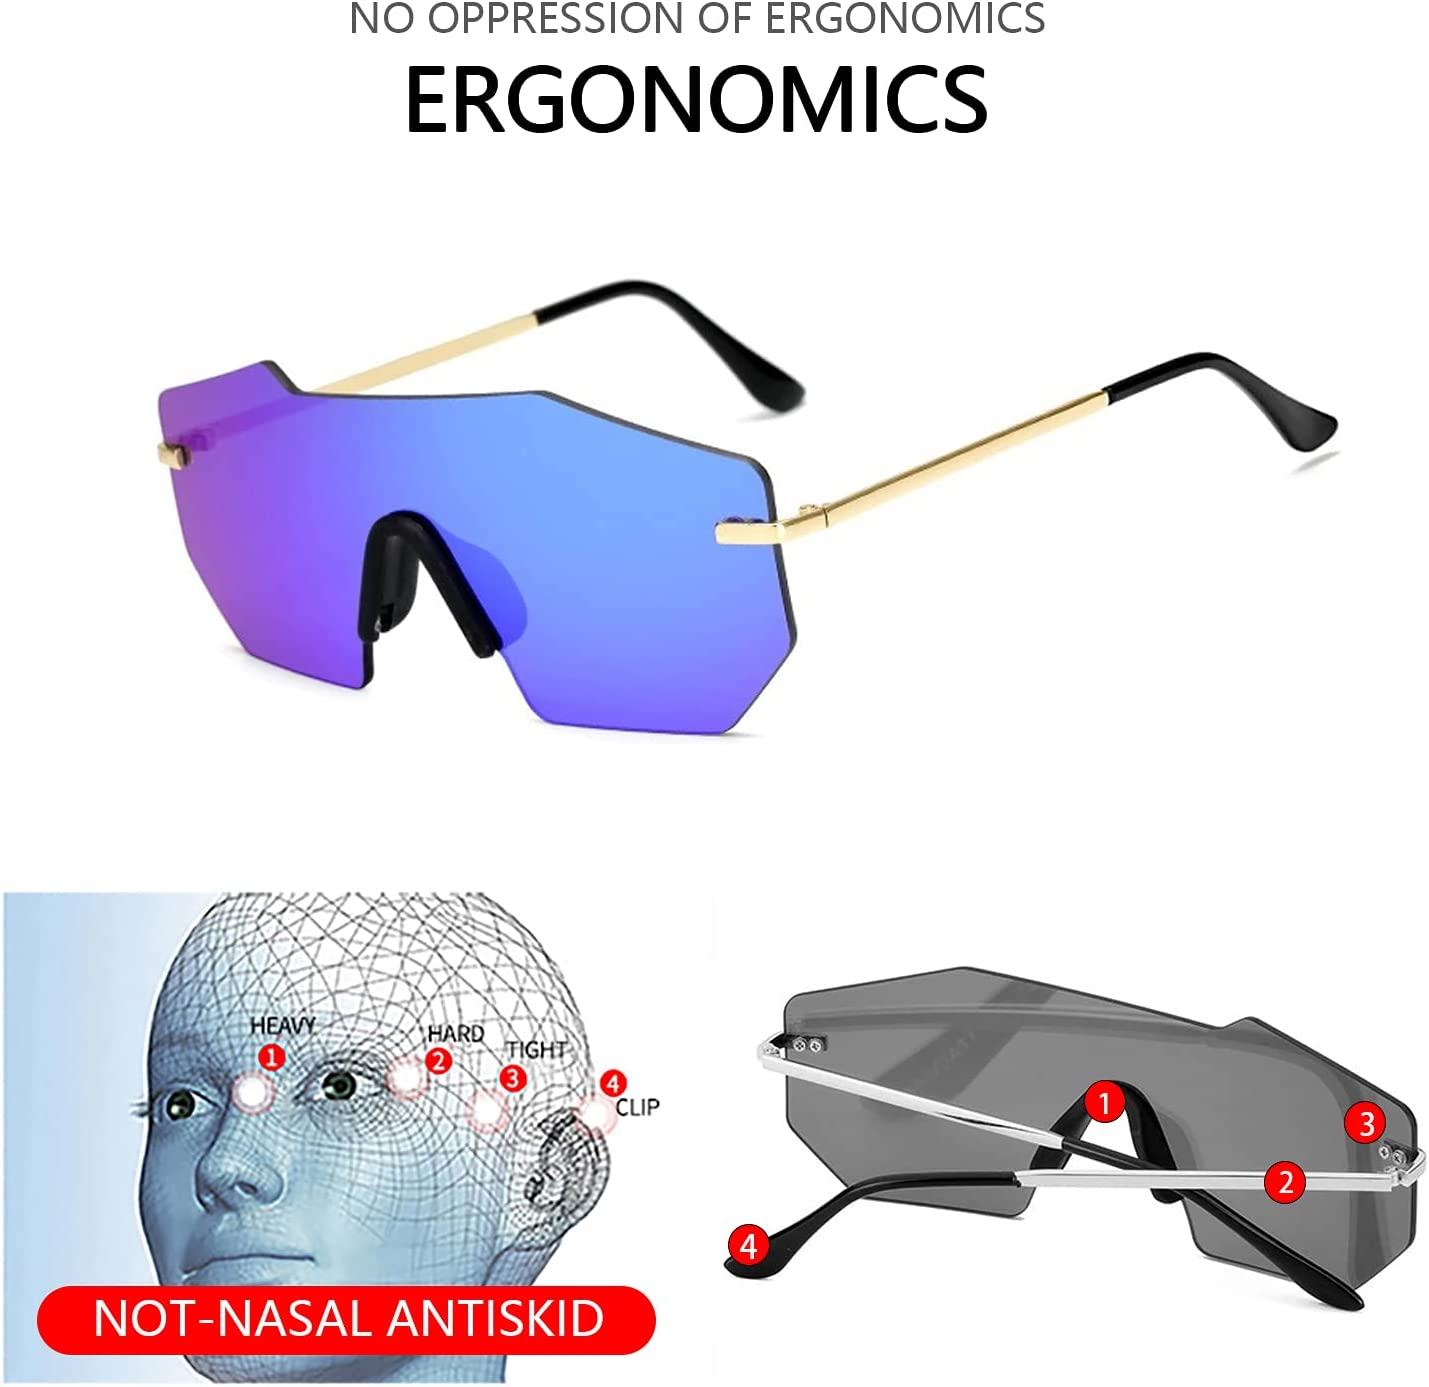 kexle Retro Polygonal Style Sunglasses Sports Eyewear UV400 Polarized Sunglasses for Men and Women Outdoor Windproof Cycling Glasses